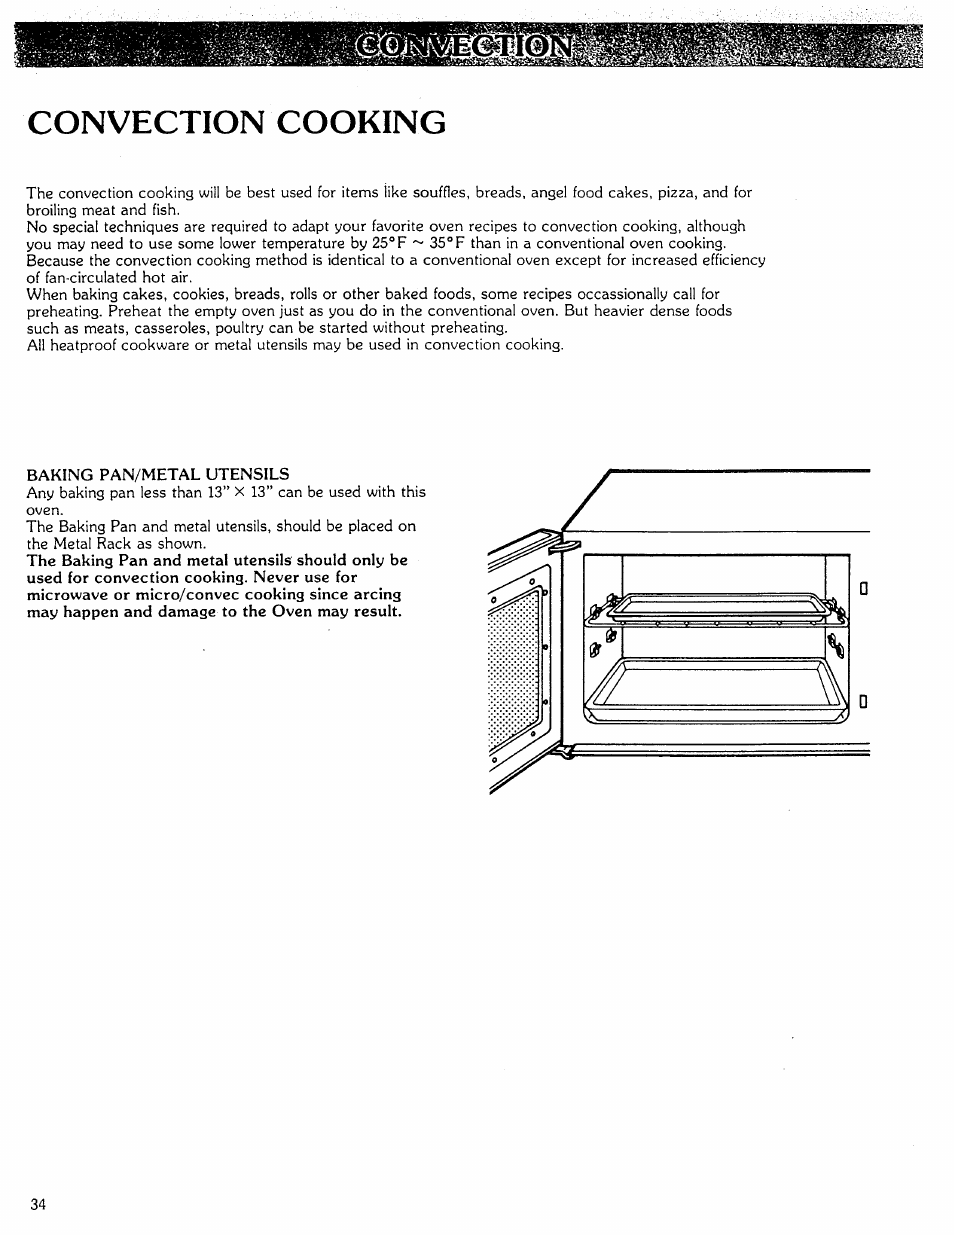 Convection cooking | Kenmore Microwave Oven User Manual | Page 34 / 60